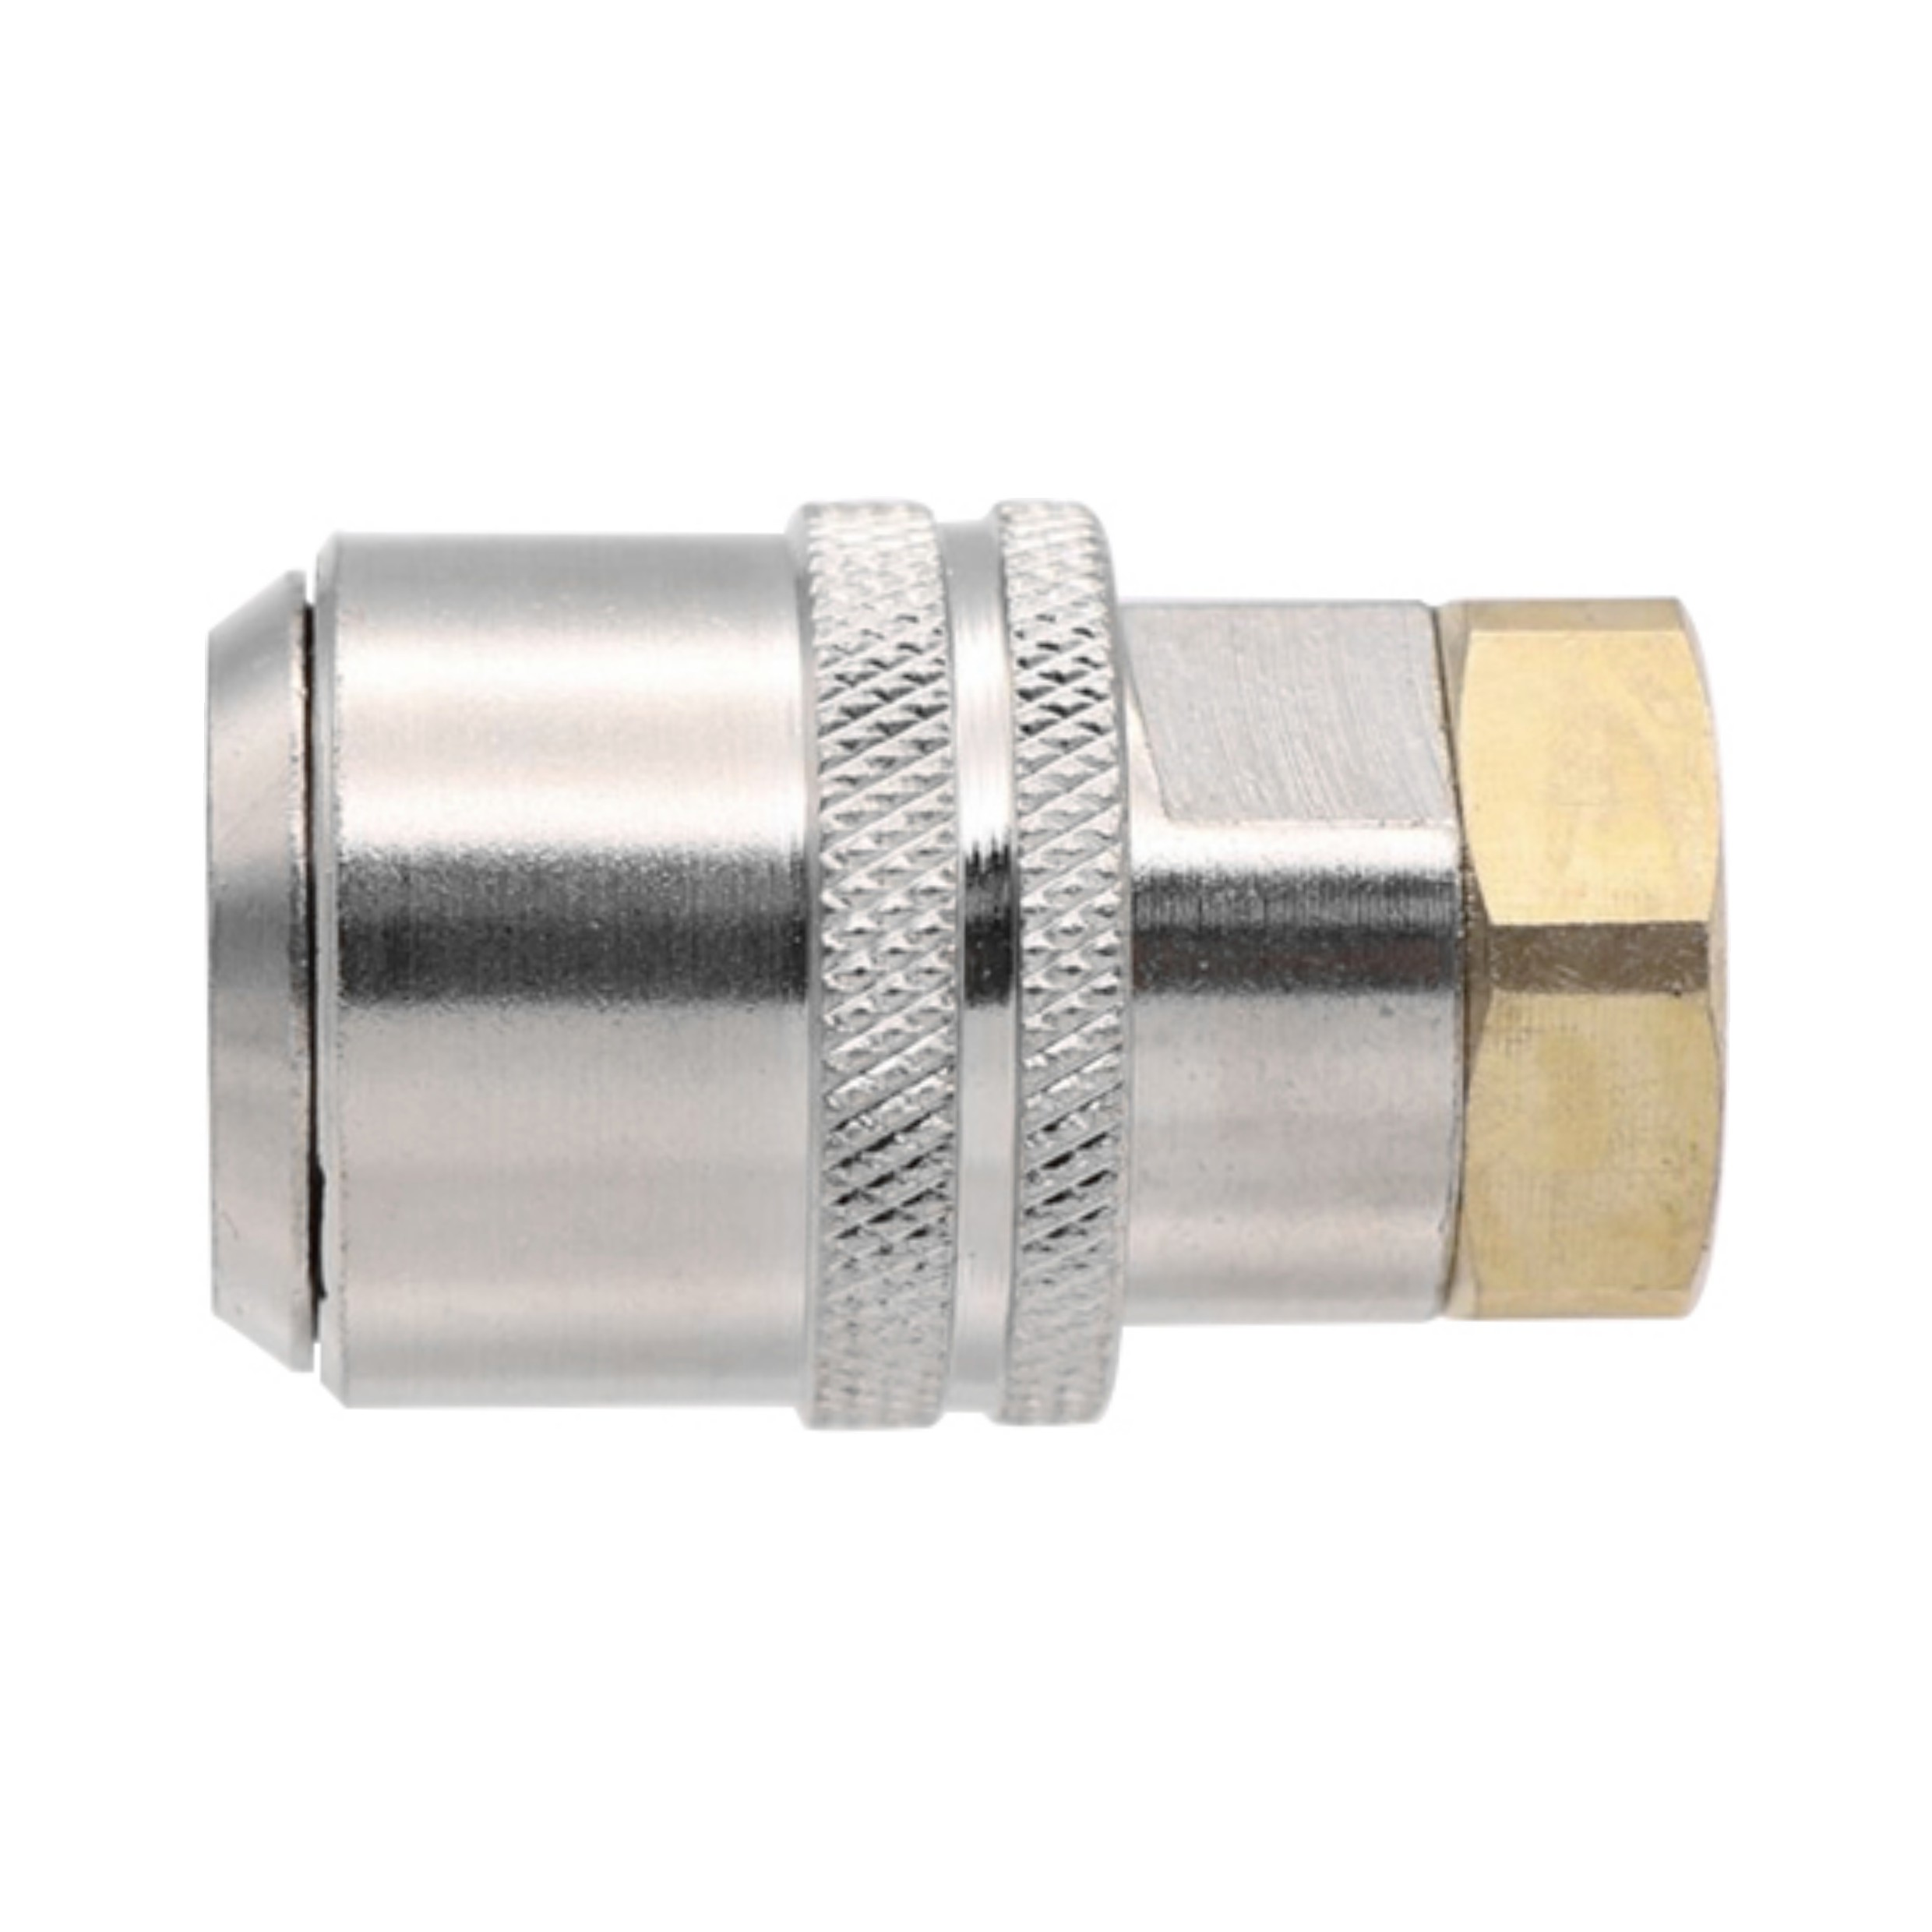 Large Bore Lock On Air Chuck Closed End Nickle Plated Brass 1/4